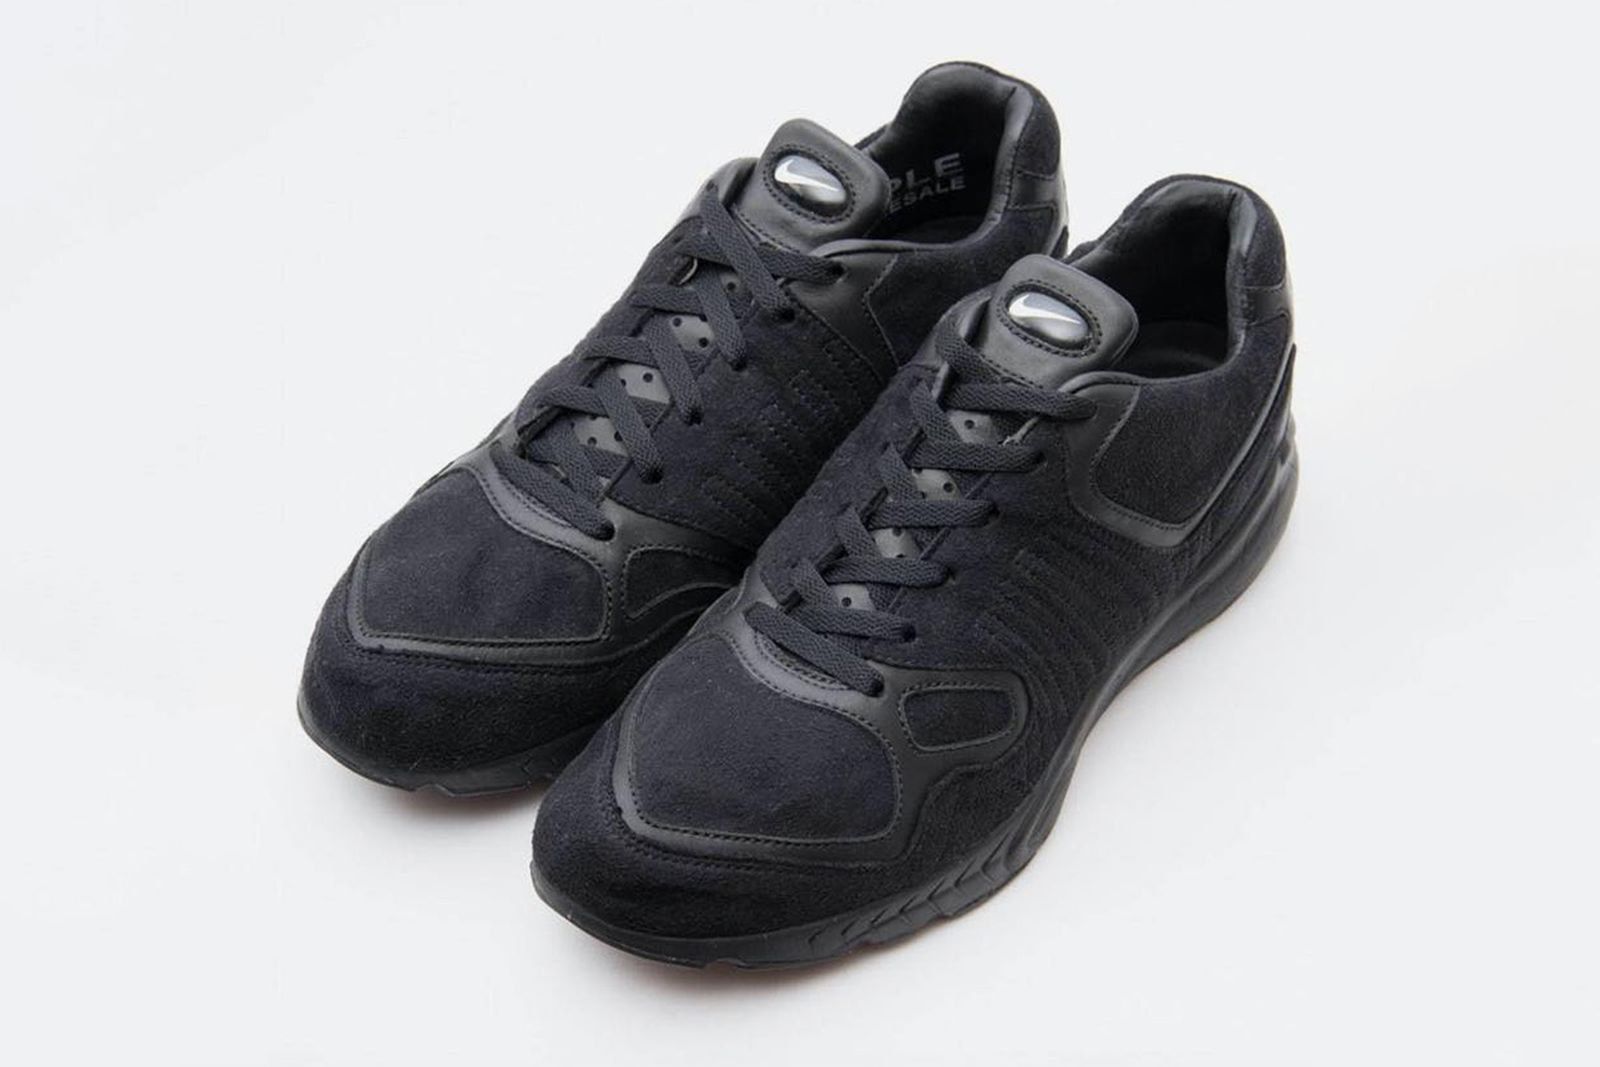 comme-des-garcons-nike-air-zoom-talaria-release-date-price-01